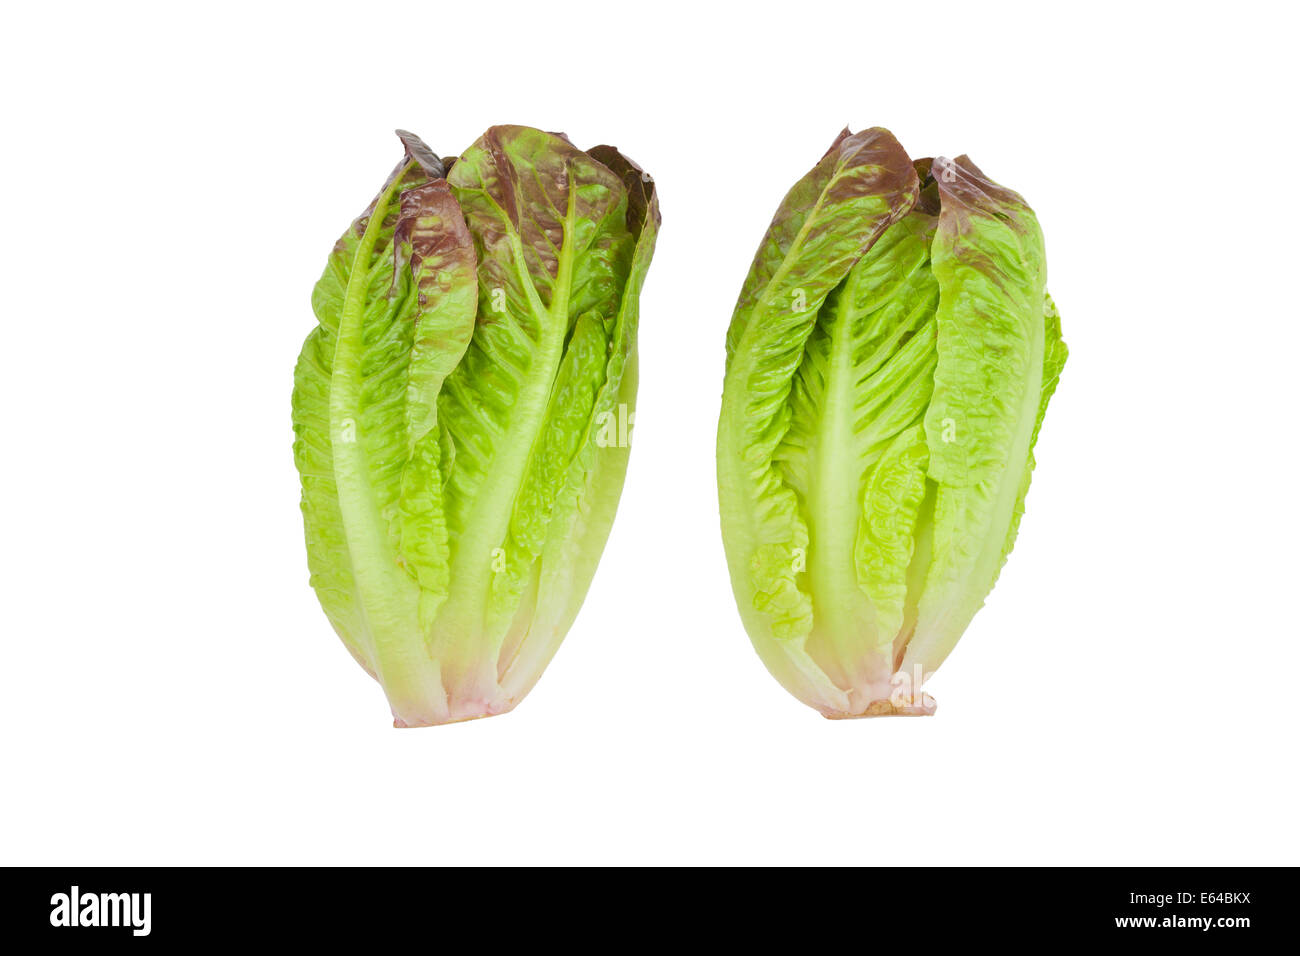 Fresh whole red leaved mini cos lettuce - Stock Image